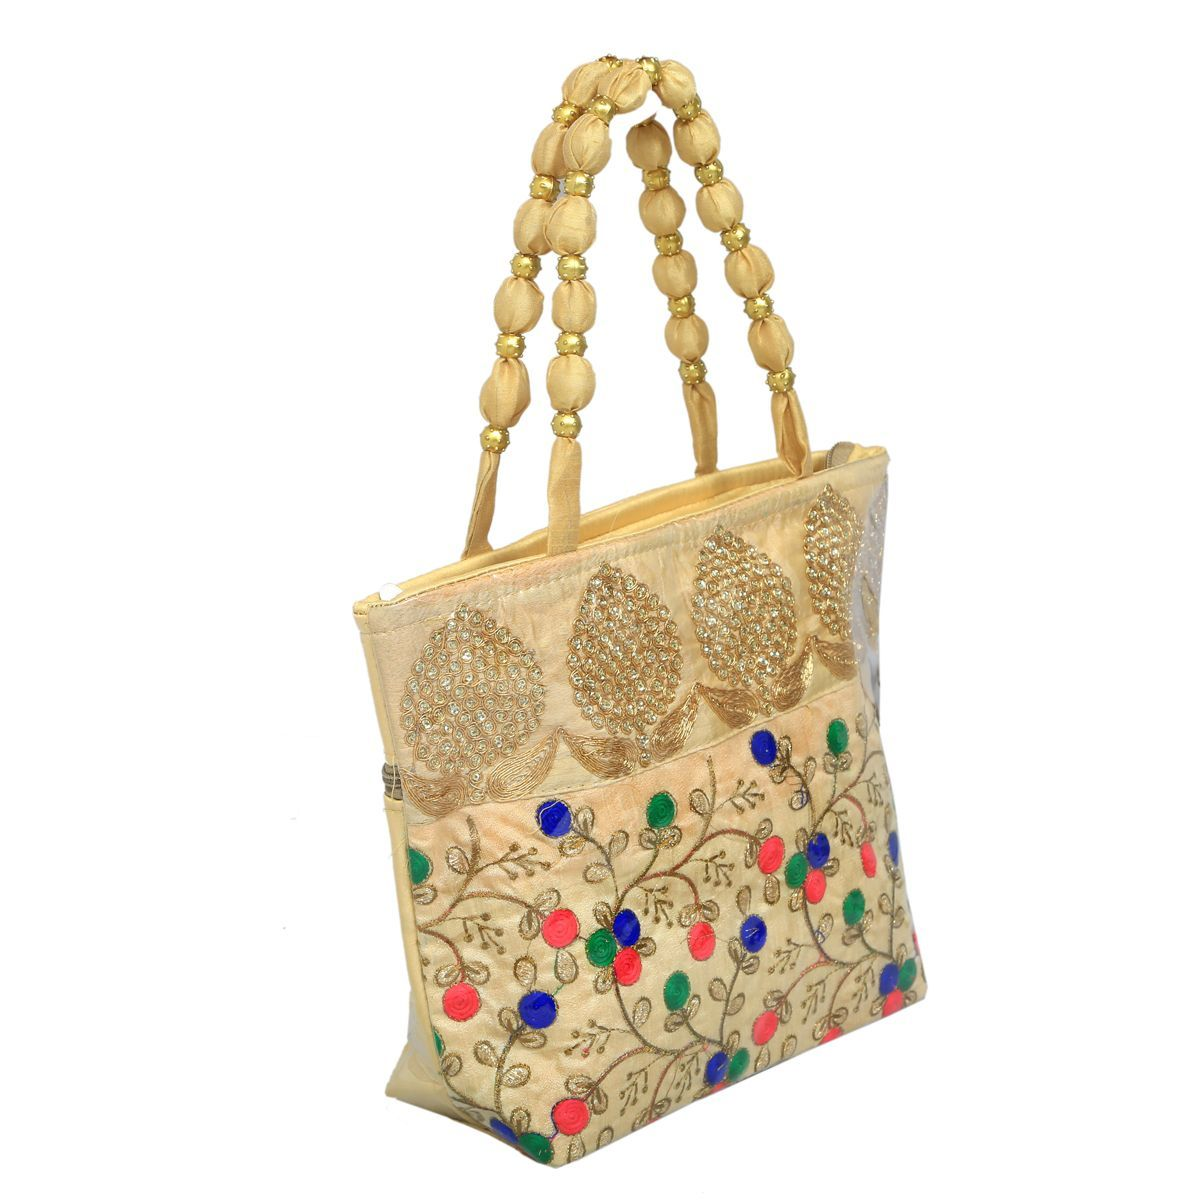 Kuber Industries™ Women Stylish Handbag Fully Laminated (Traditional Design), Cream - BG23